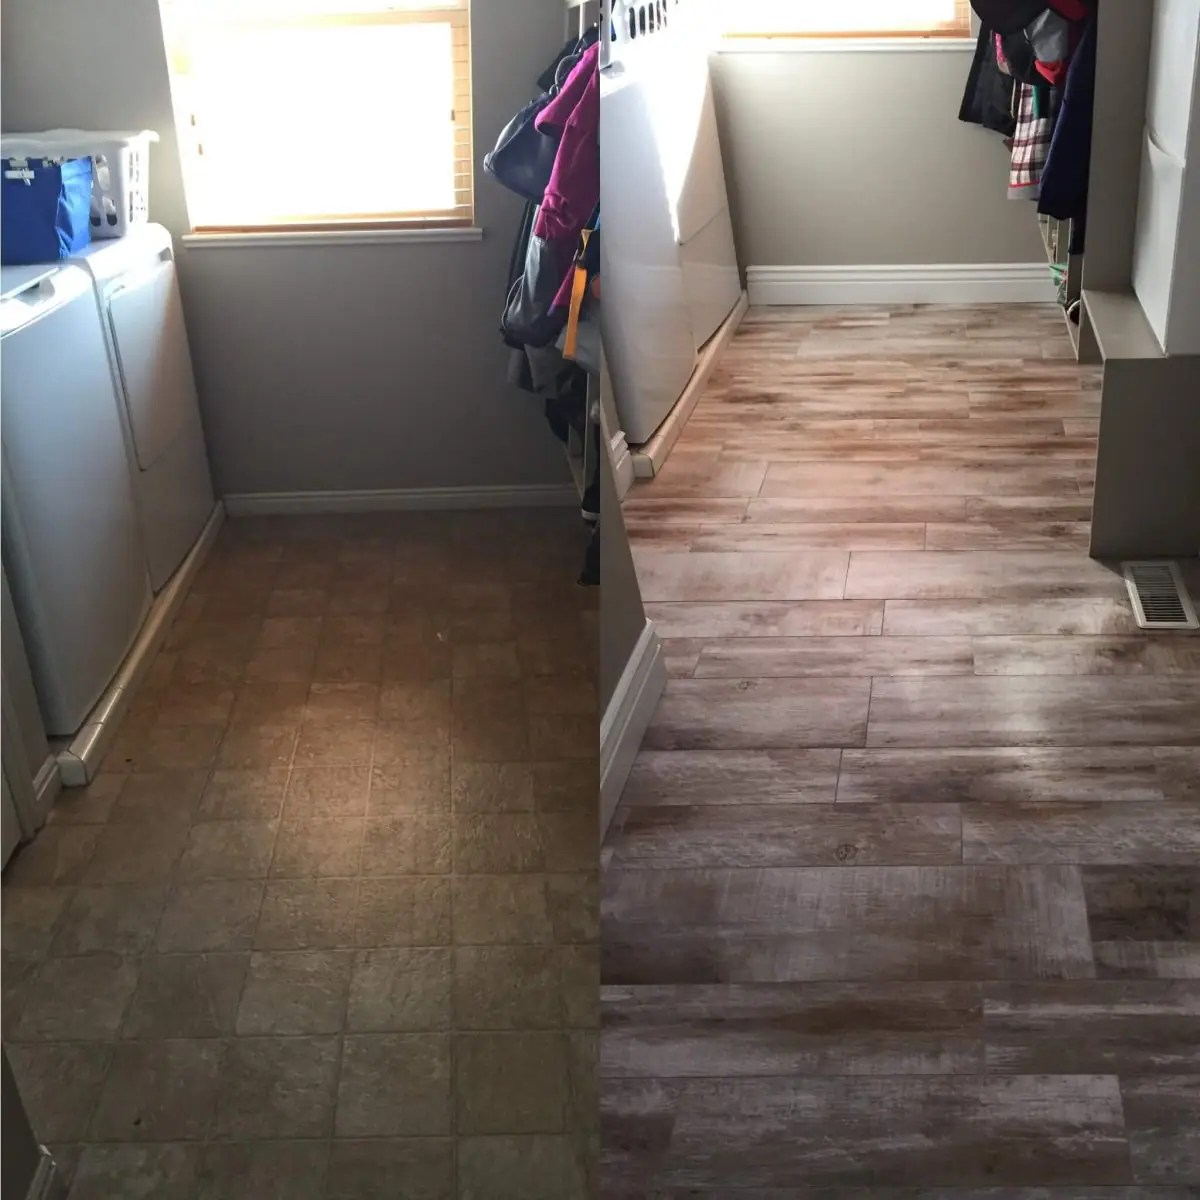 Paint Colors To Brighten A Dark Room Flooring Before And After Reveal-wood Looking Tile - 365